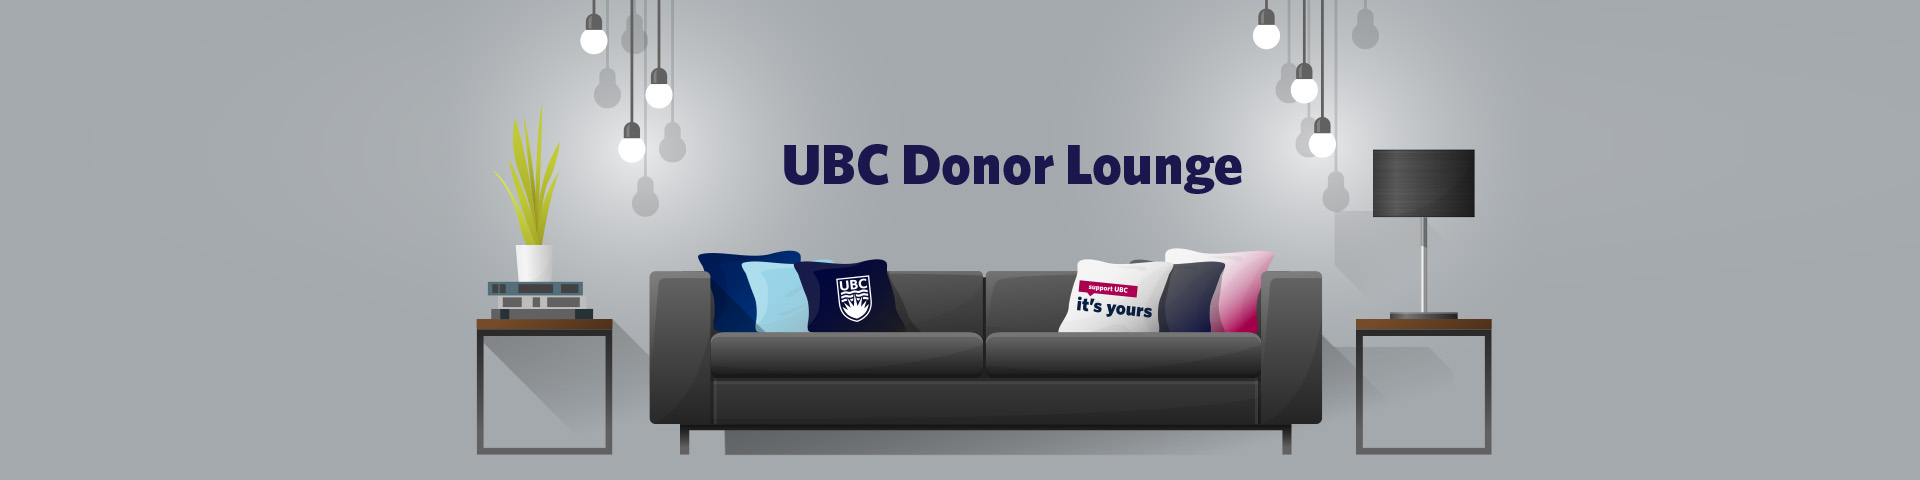 Donor Lounge